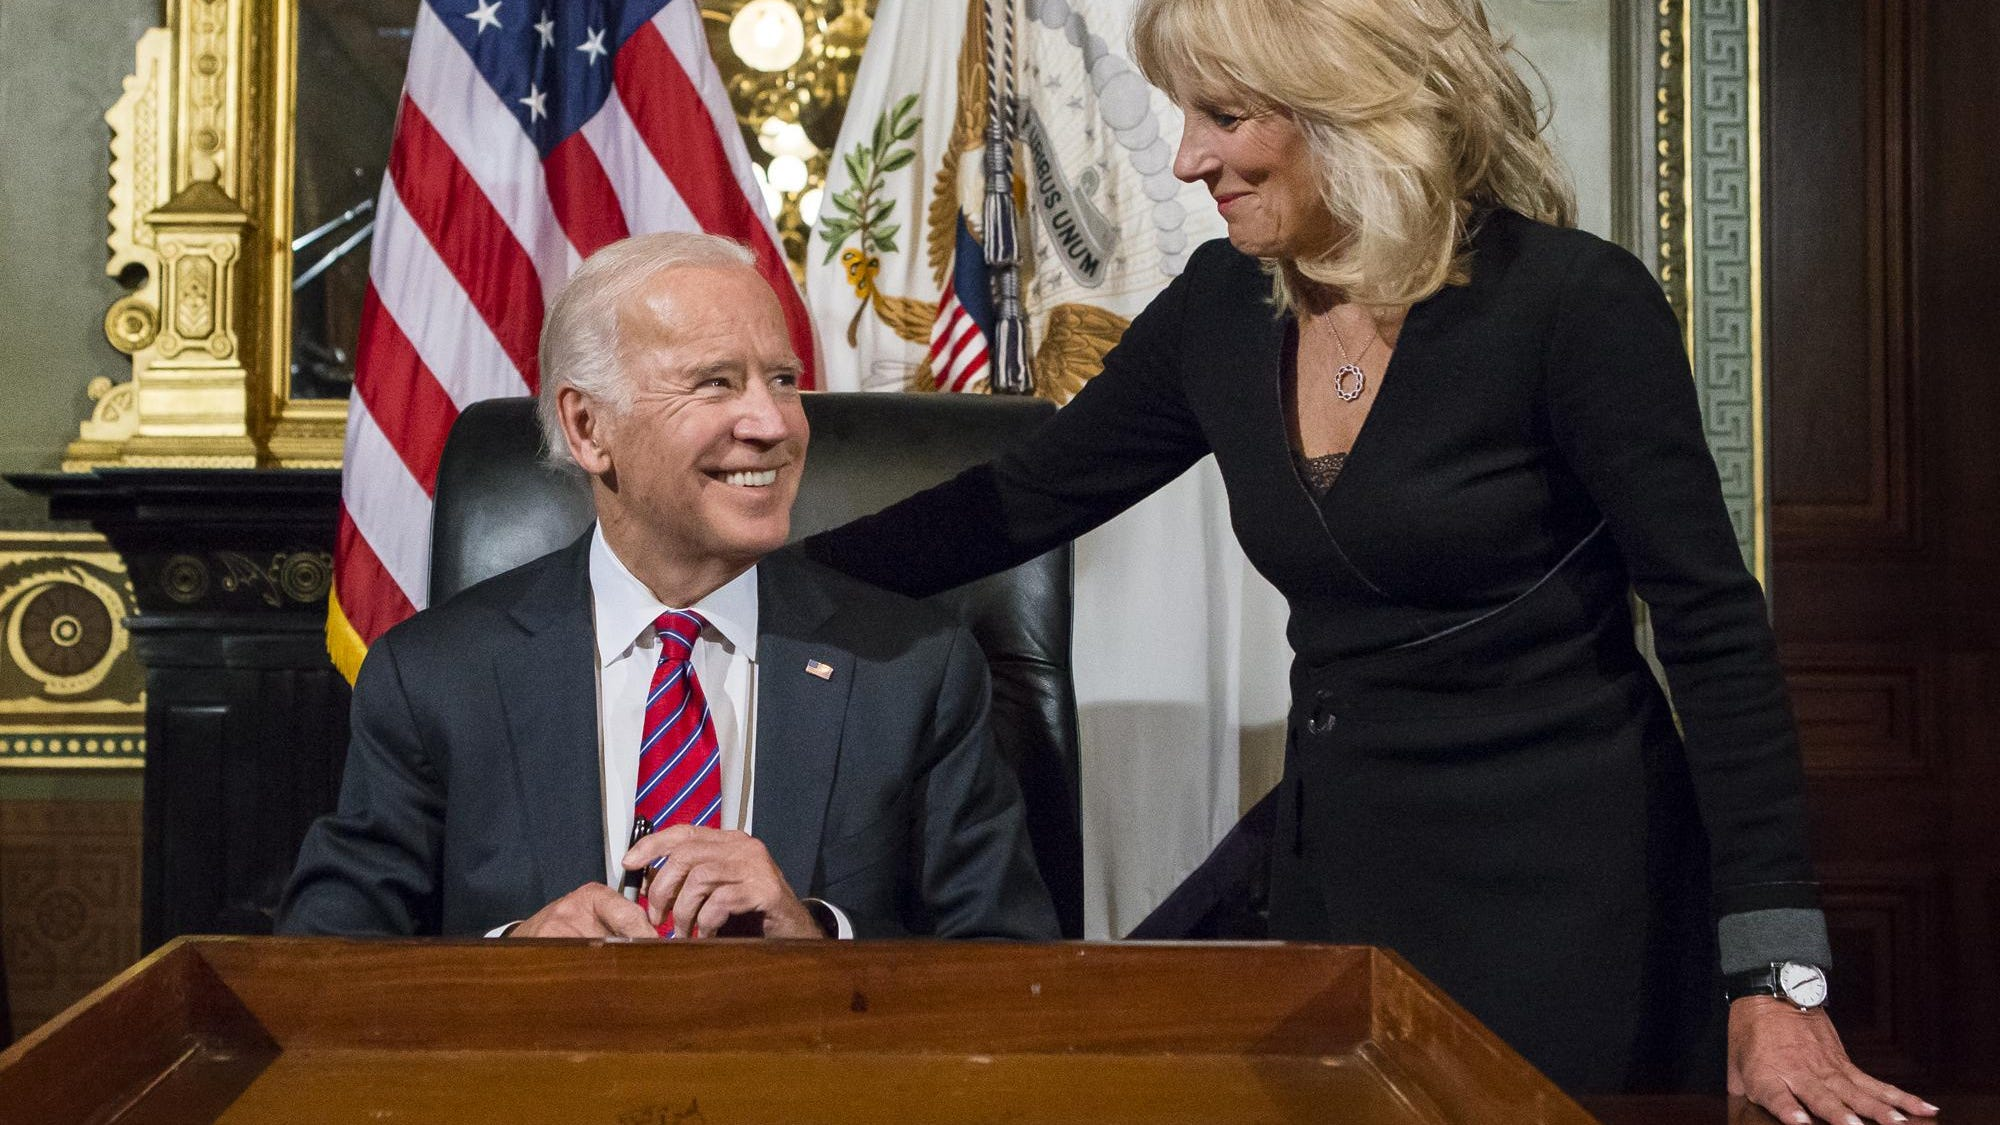 Joe Biden 2020 A Look At The Marriages Children And Family Tree